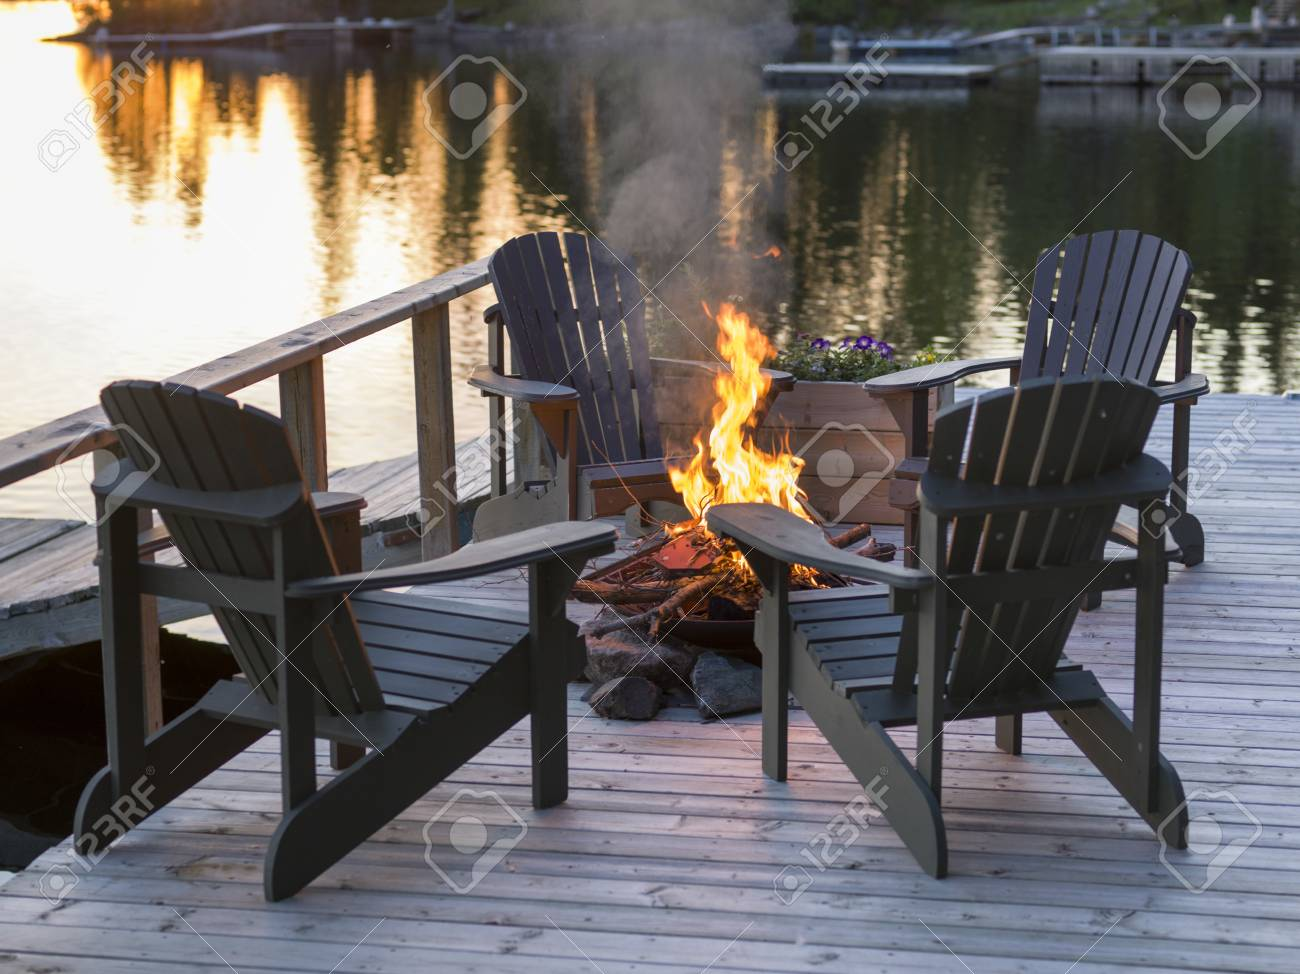 Adirondack Chairs And Campfire On A Dock Lake Of The Woods